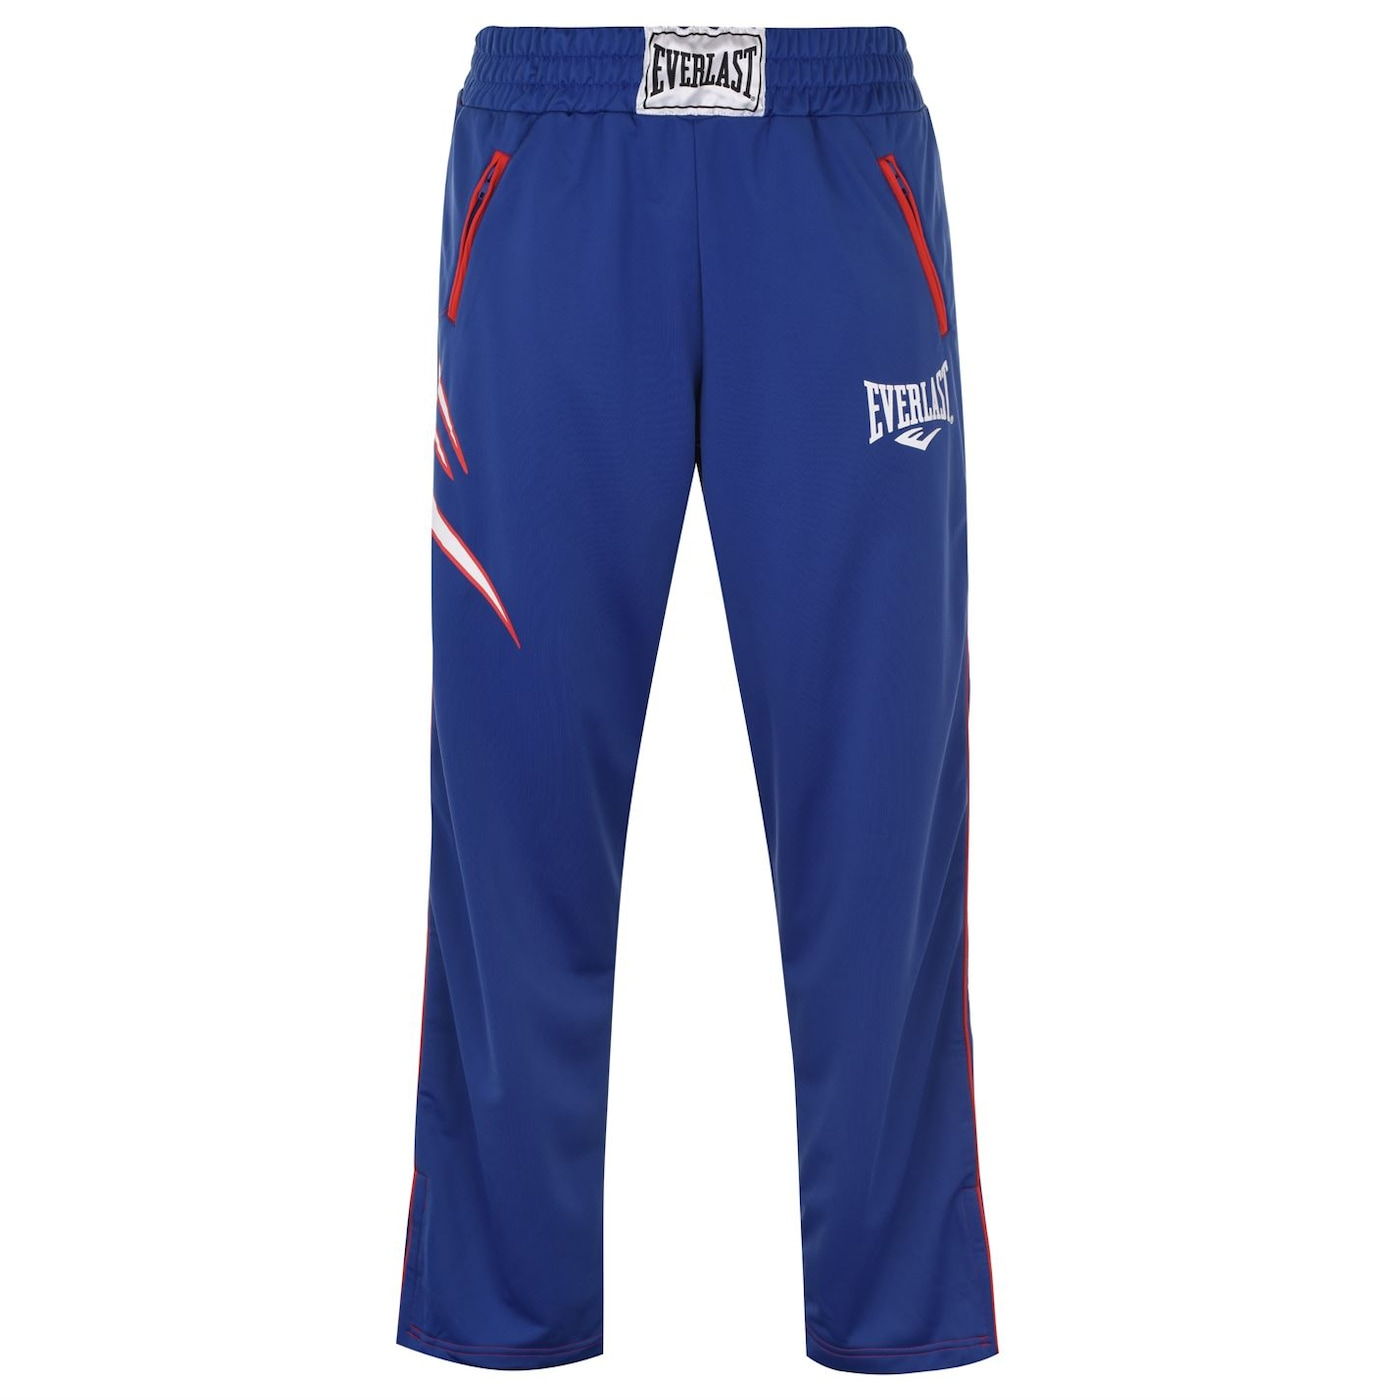 Everlast Piped Track Pants Mens